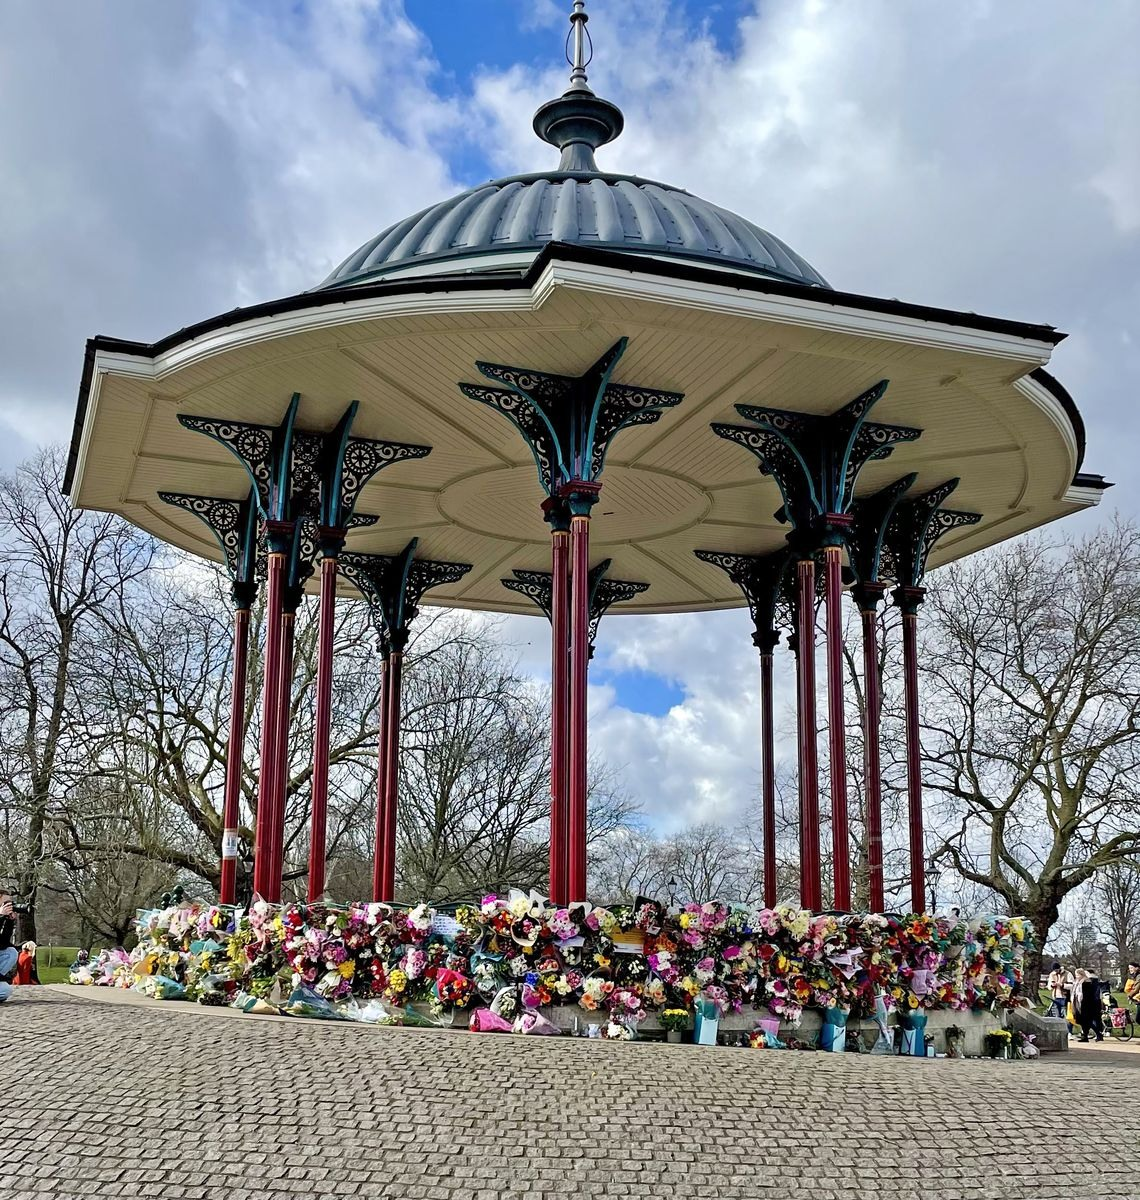 Saturday 13 March — Flowers appear on the Bandstand